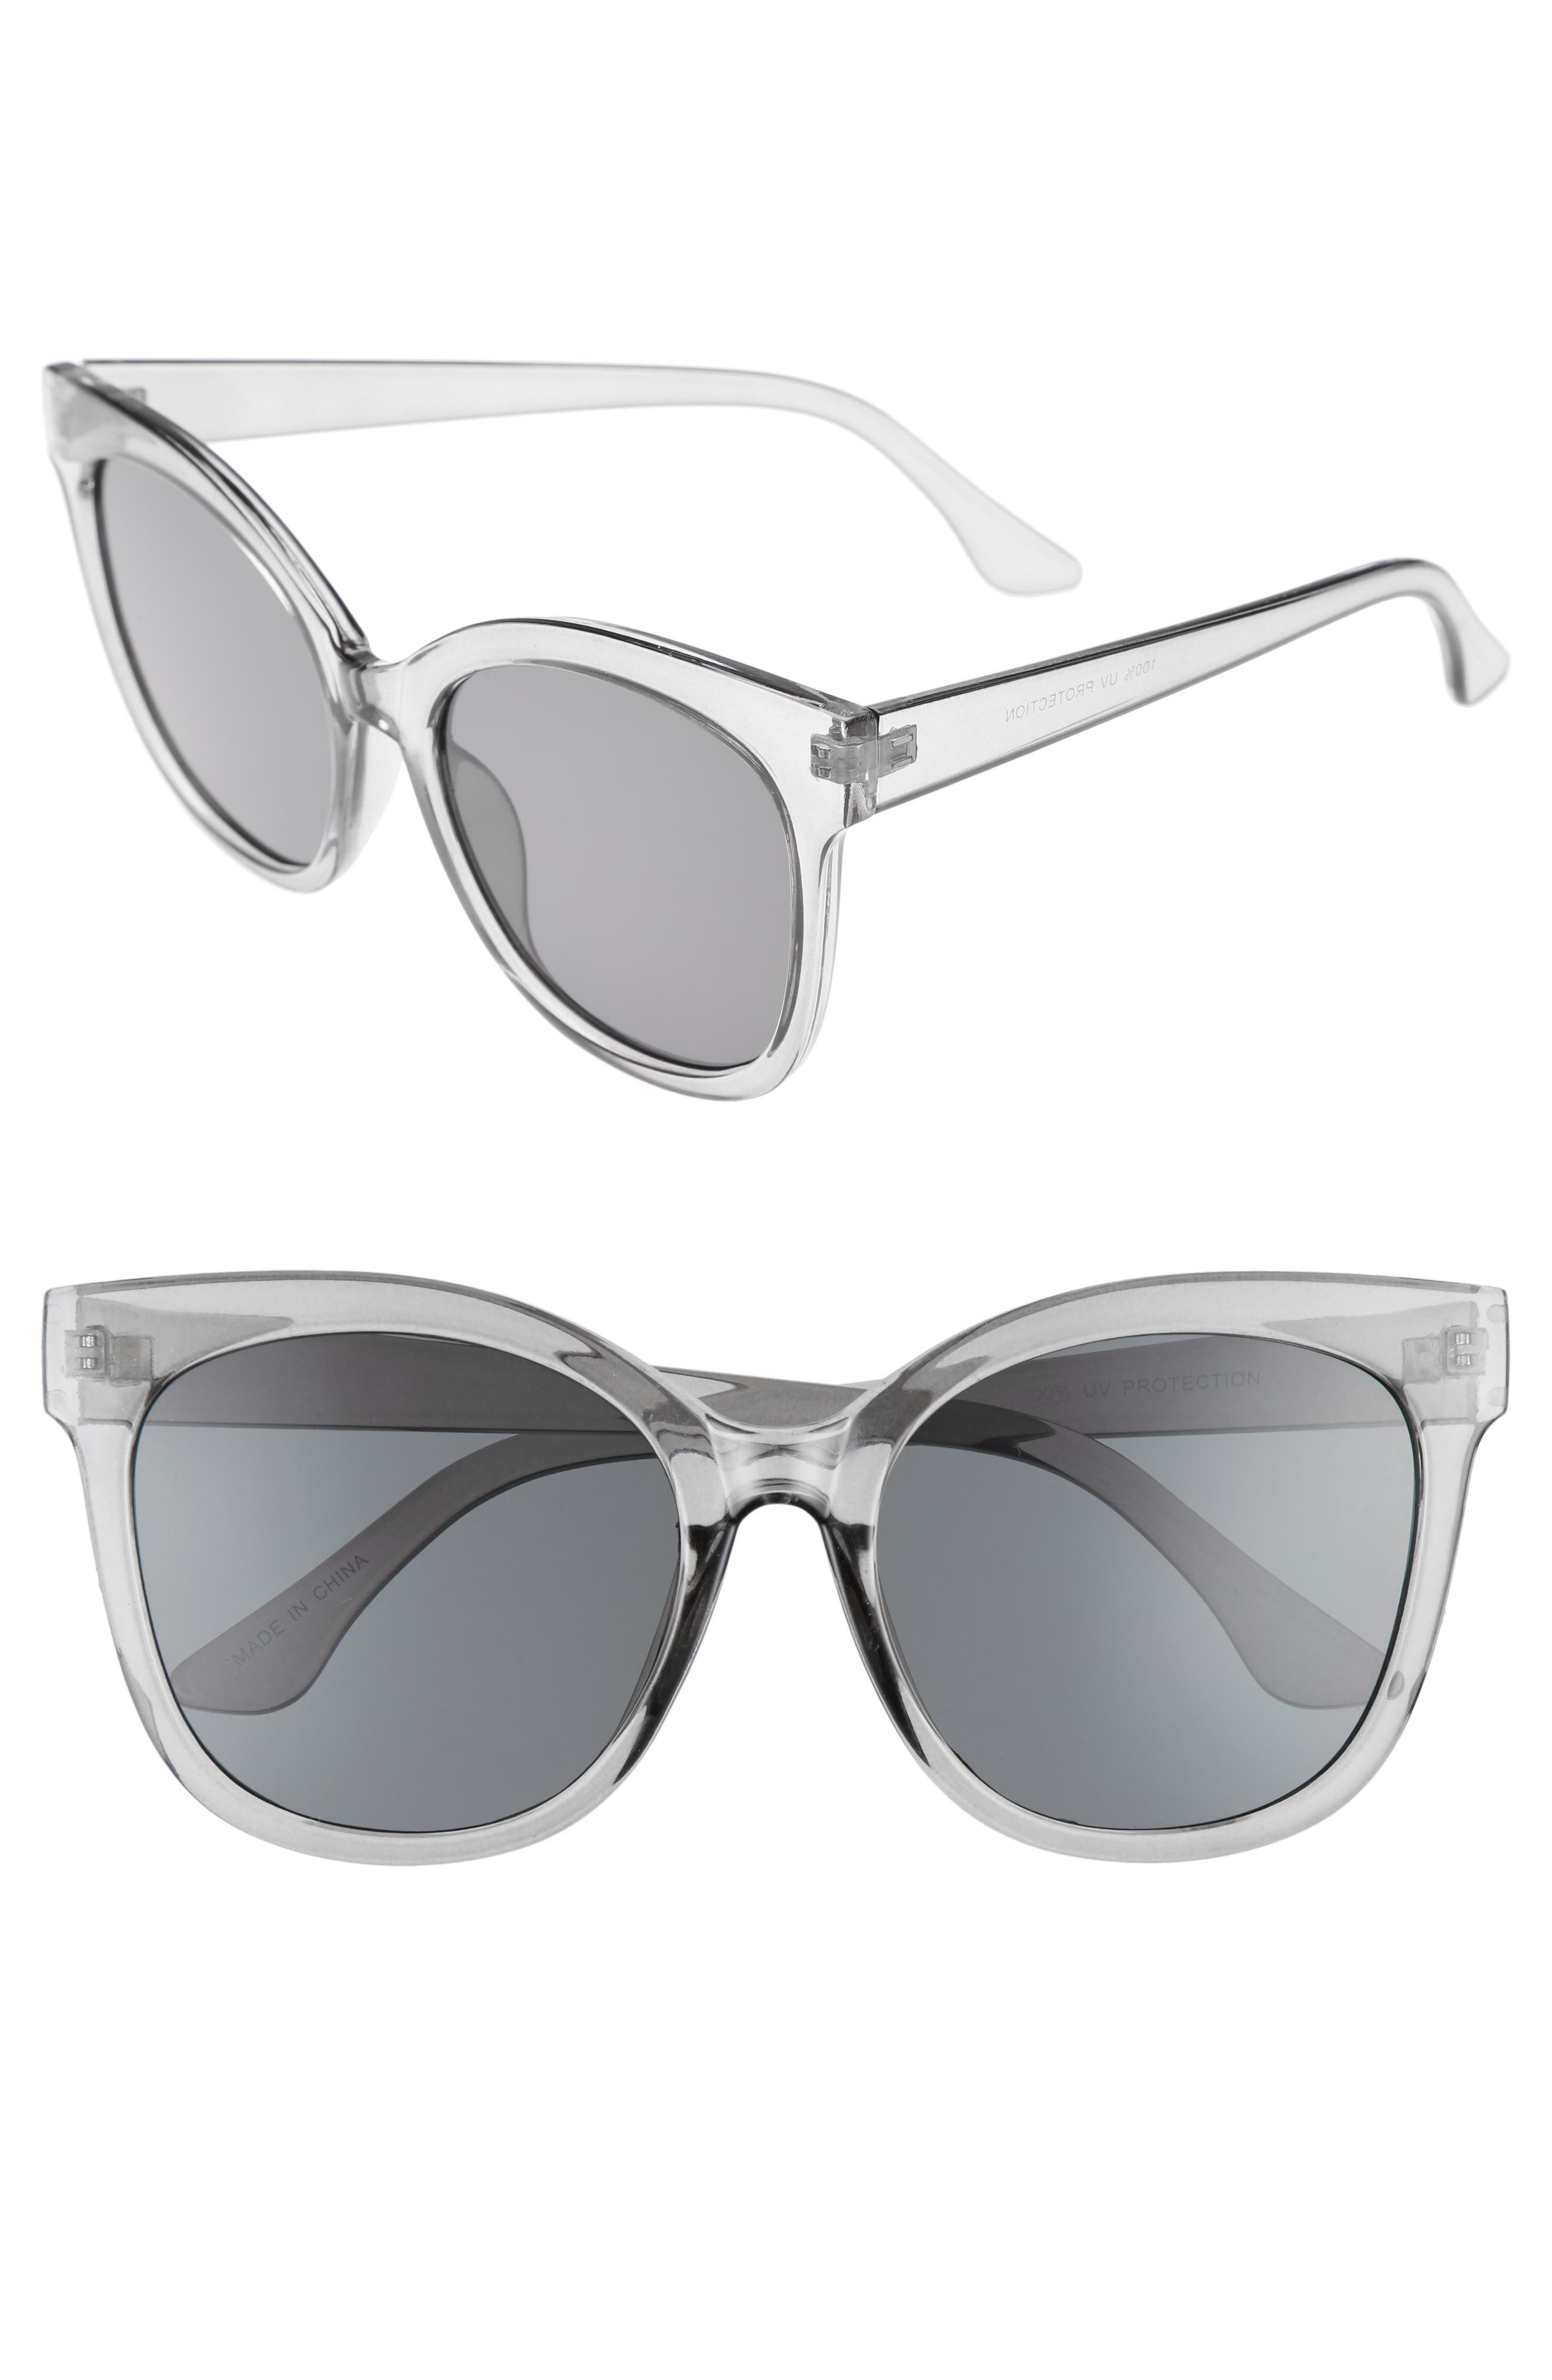 55mm Square Sunglasses,                             Main thumbnail 1, color,                             001